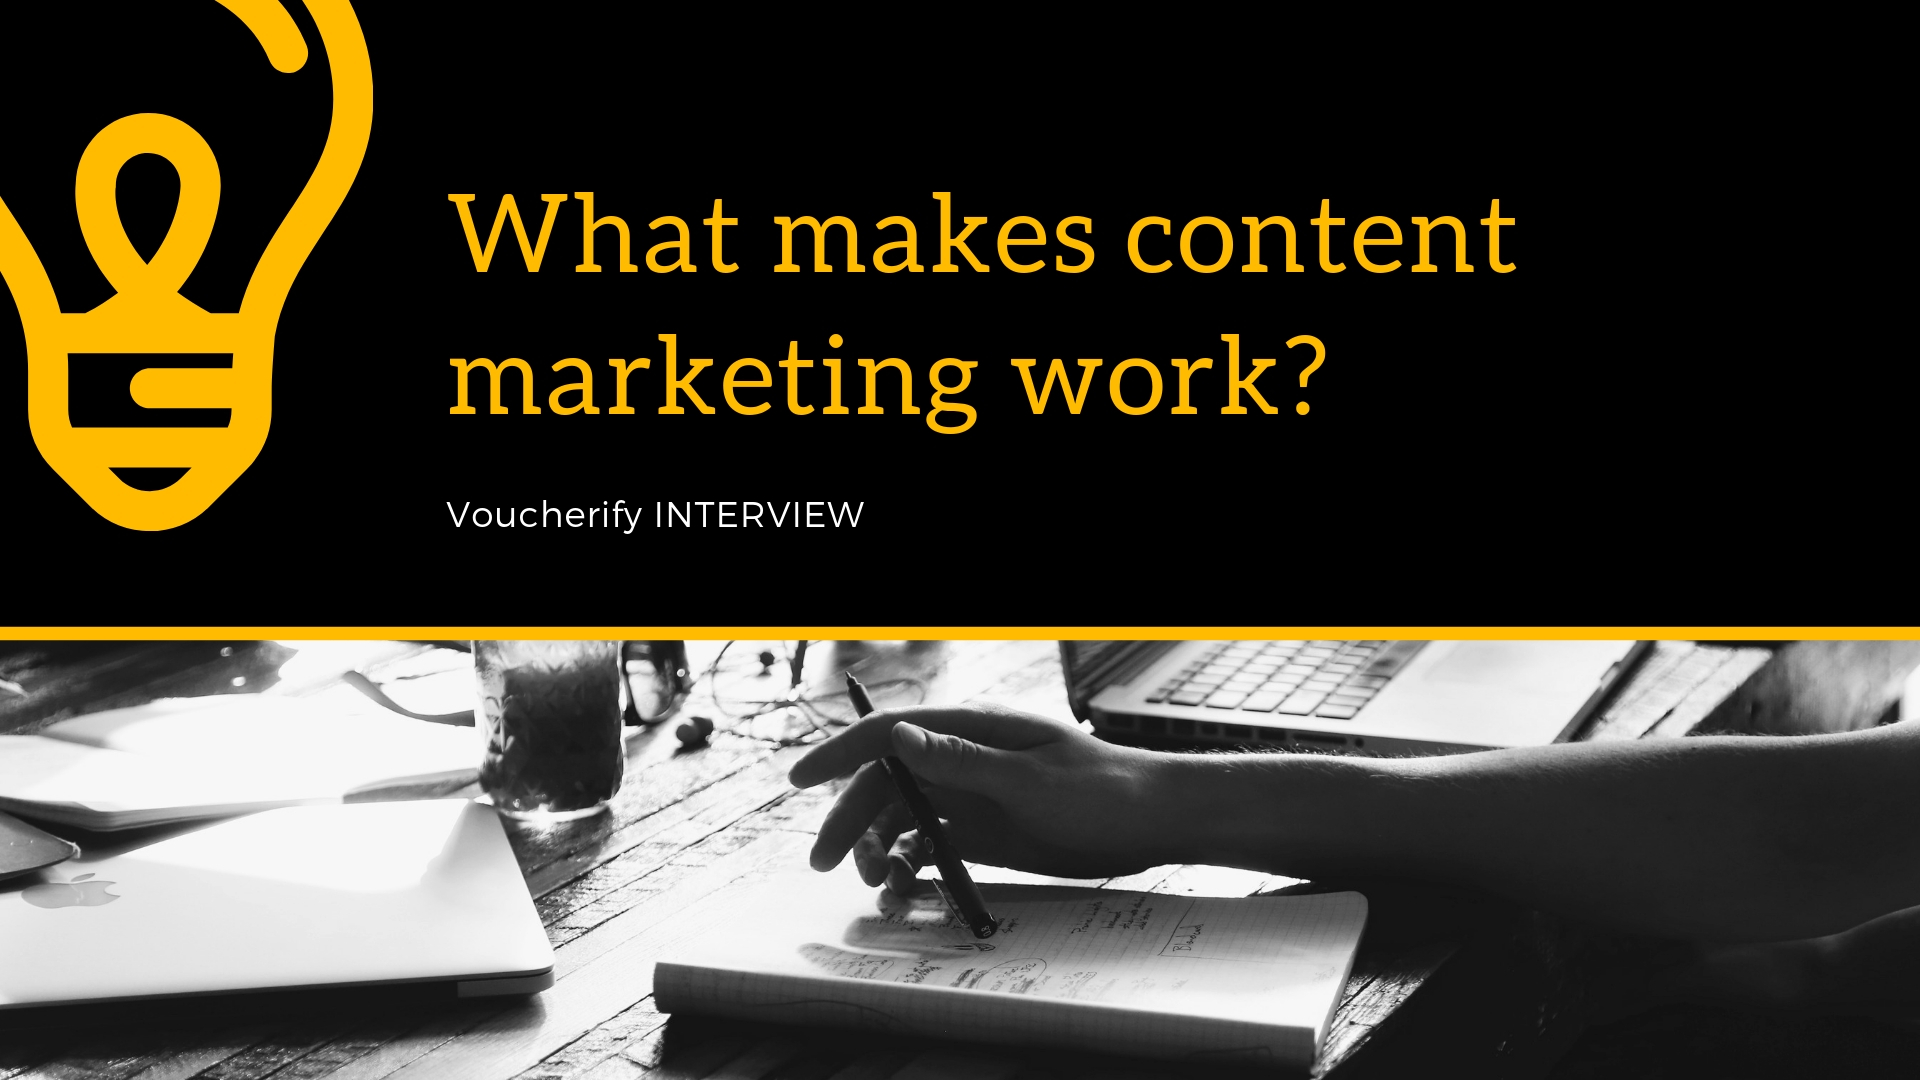 What makes content marketing work - interview with Shana Haynie